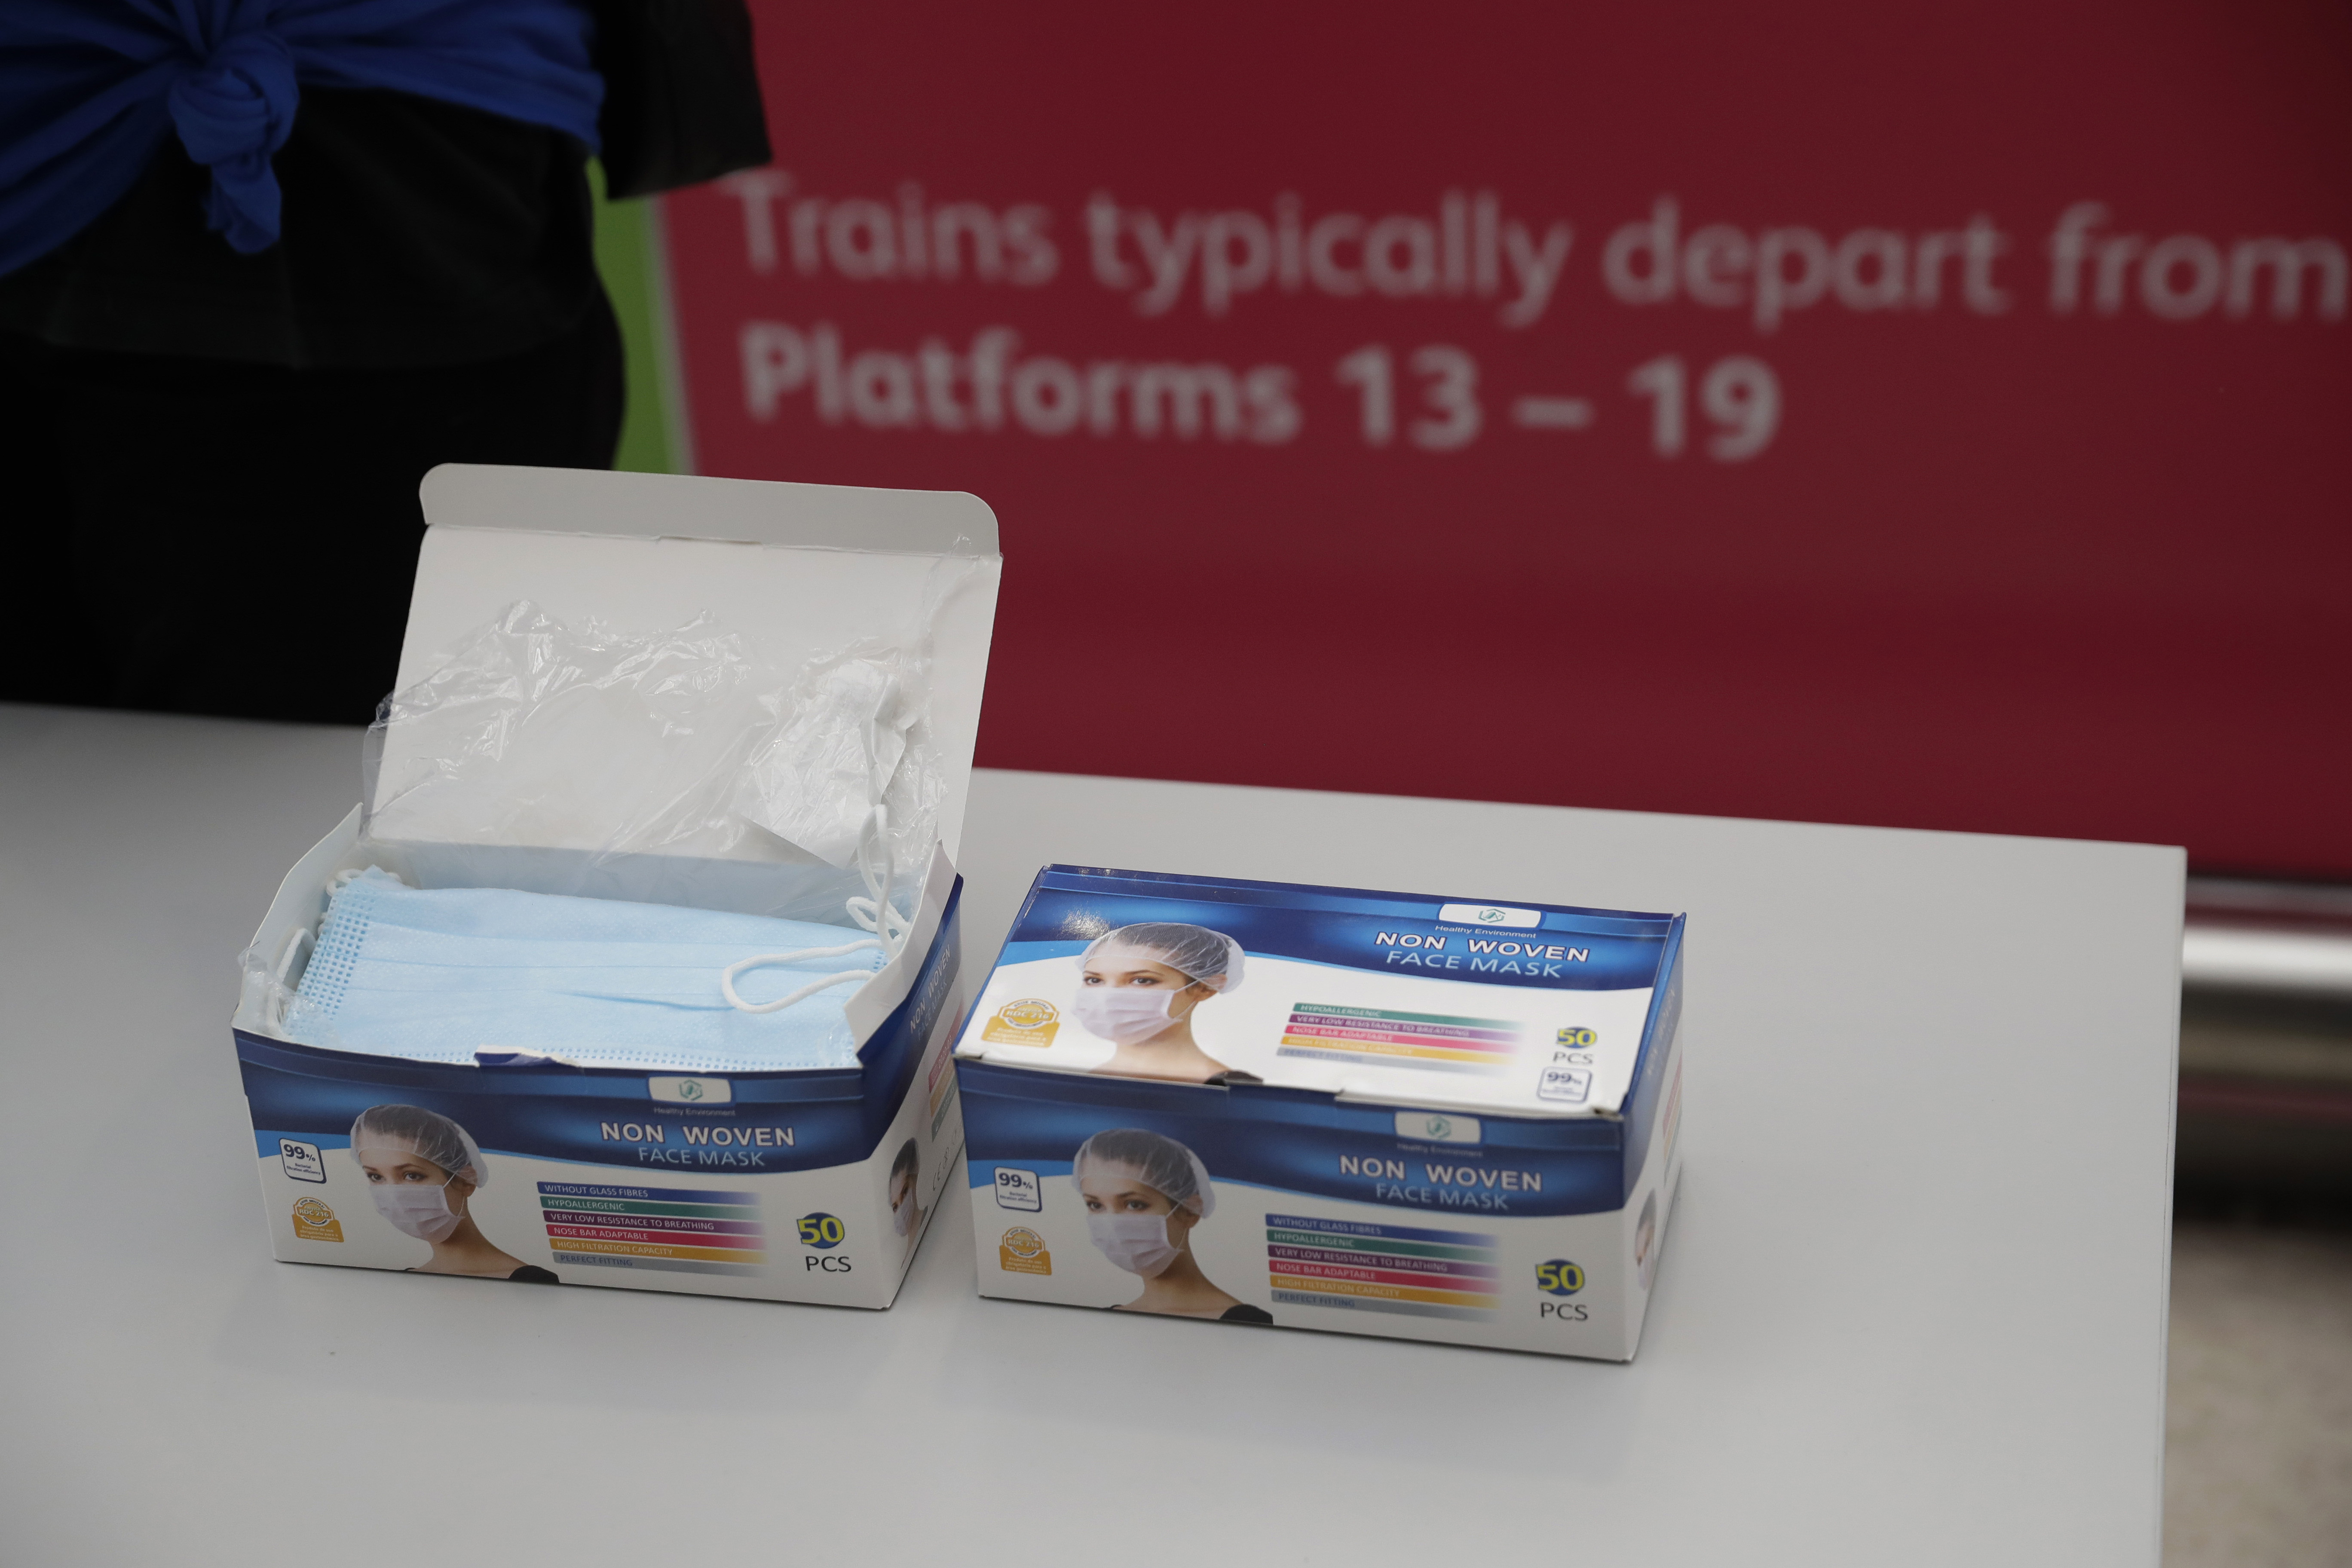 Face masks stand ready to be given out to people to help stop the spread of coronavirus in Waterloo station, London, Thursday, June 4, 2020. Waterloo station, which is wide recognised as the busiest train station in Britain, is still much quieter than normal as most commuters are working from home and not commuting into central London offices. (AP Photo/Matt Dunham)